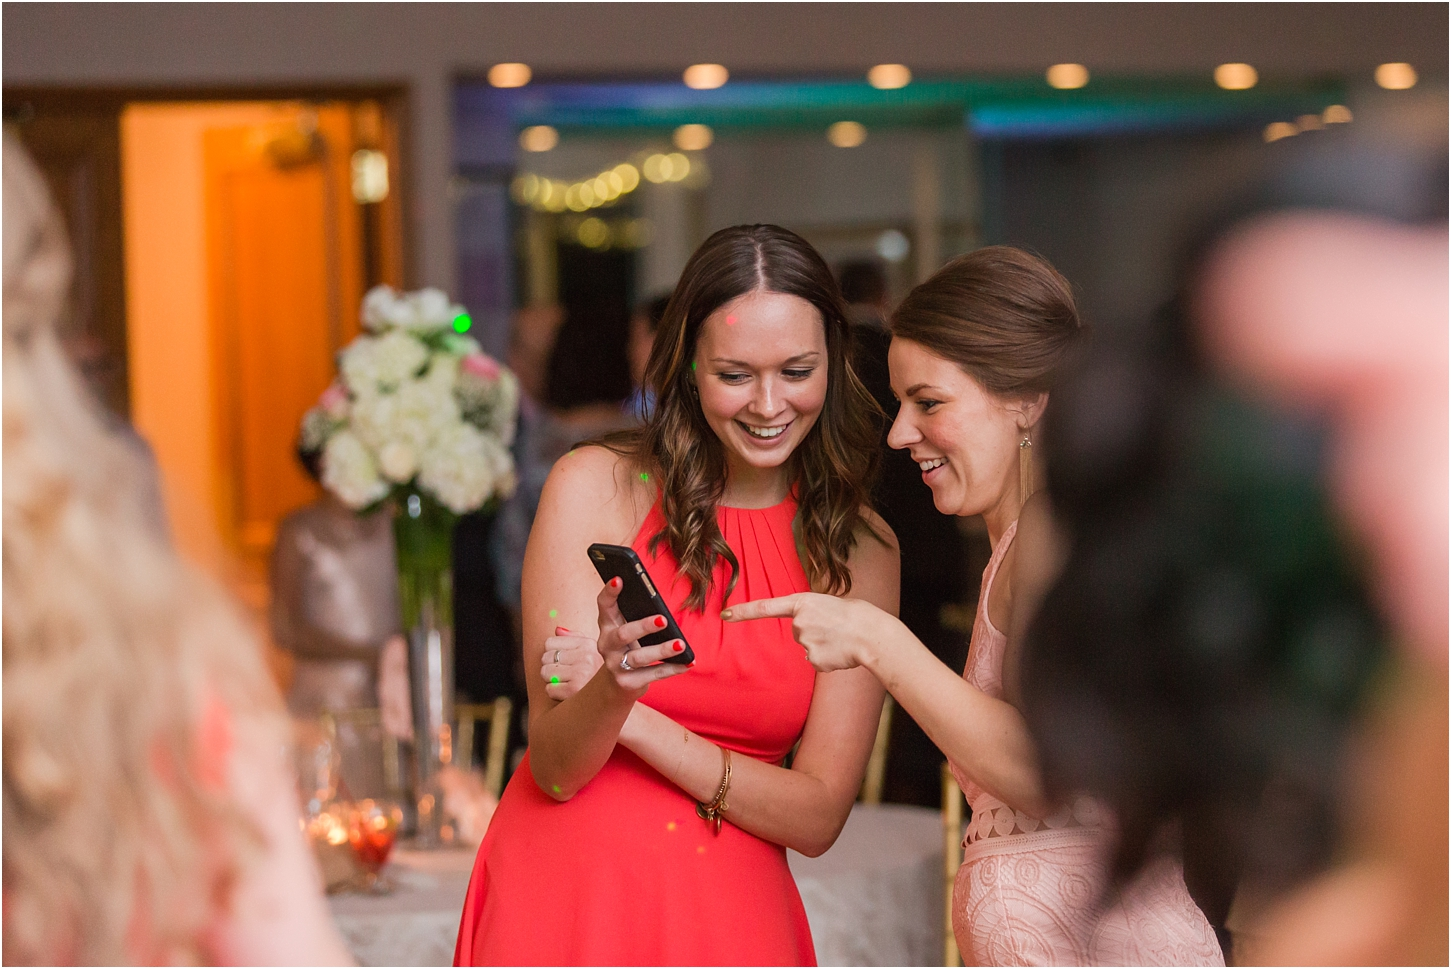 why-you-should-have-an-unplugged-wedding-by-courtney-carolyn-photography_0064.jpg